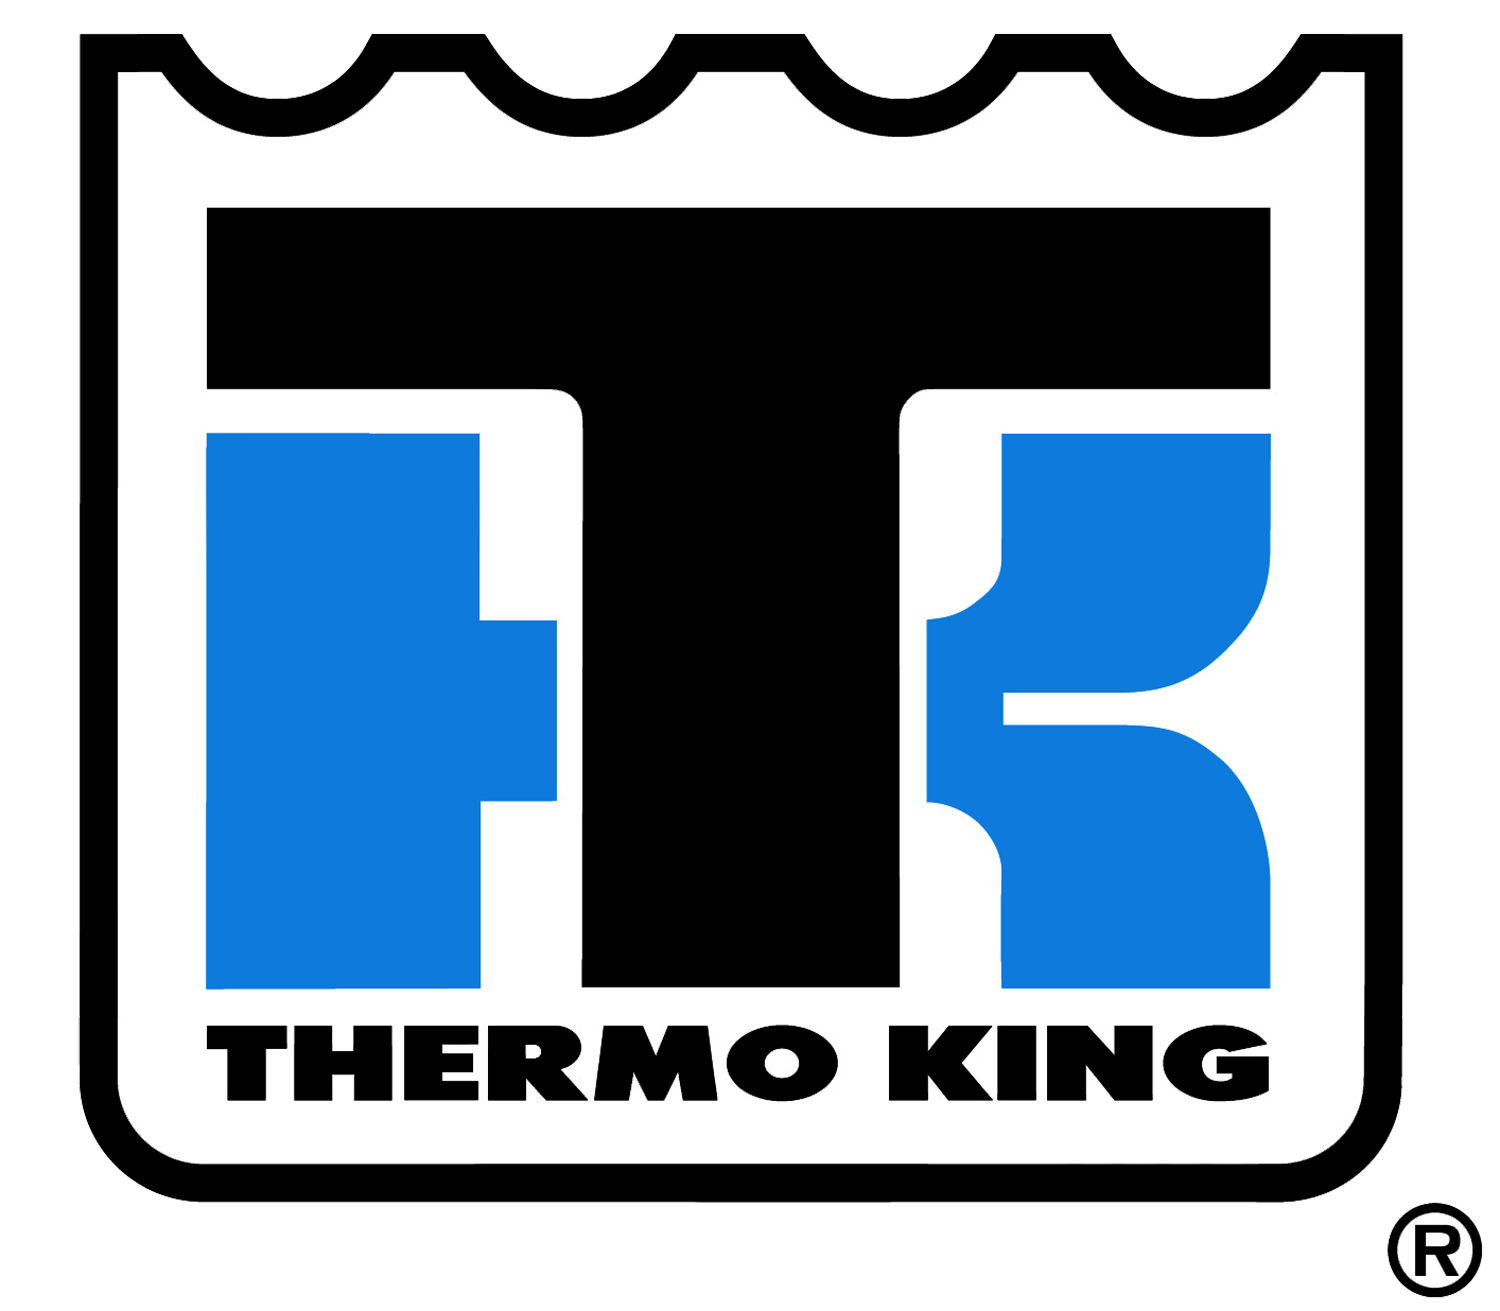 thermo king crest